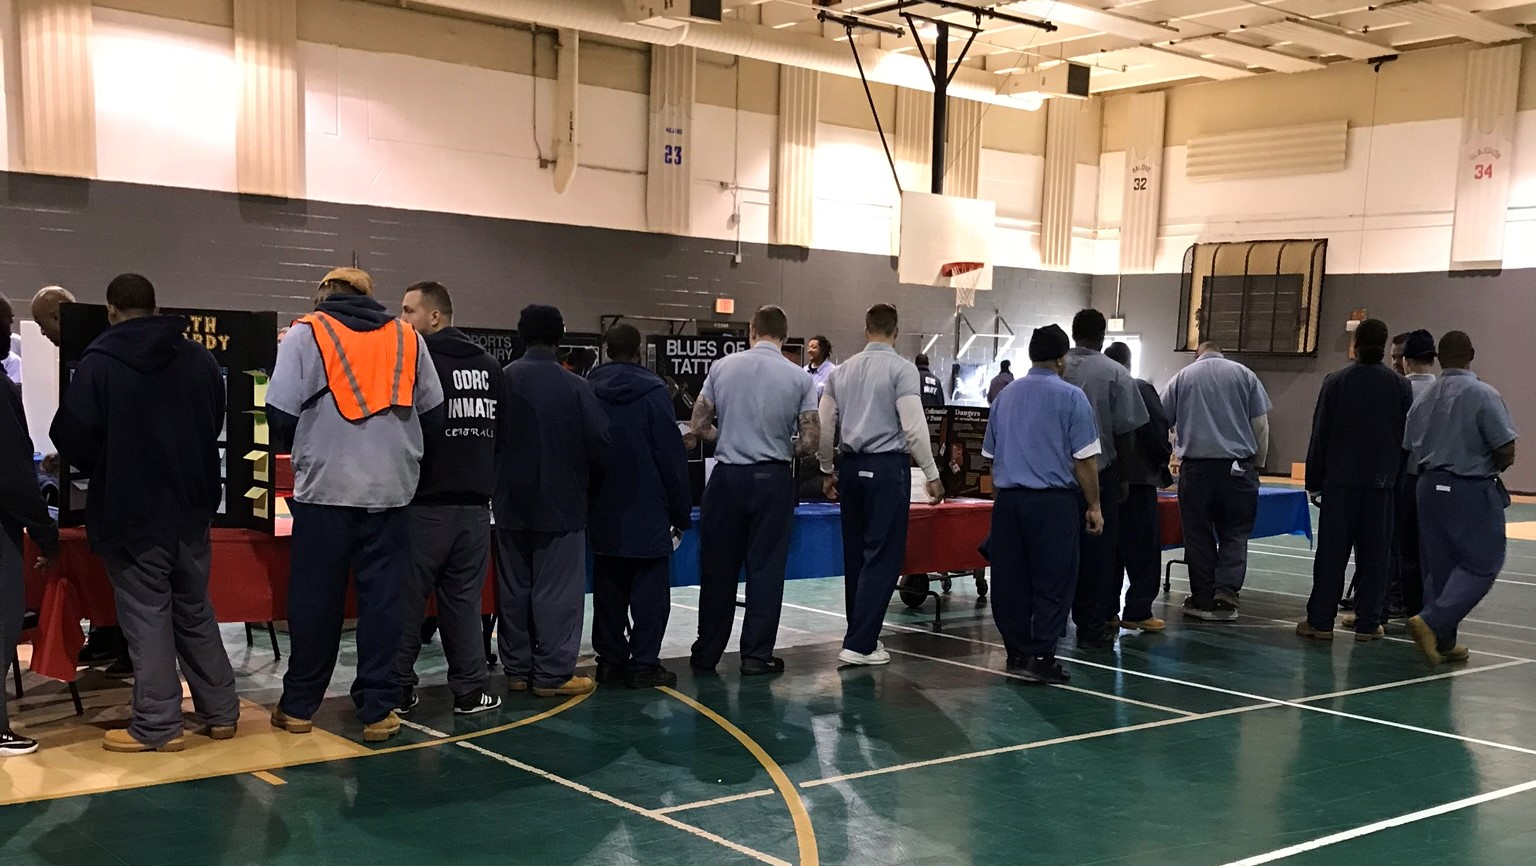 Ross Correctional Institution's Health Fair